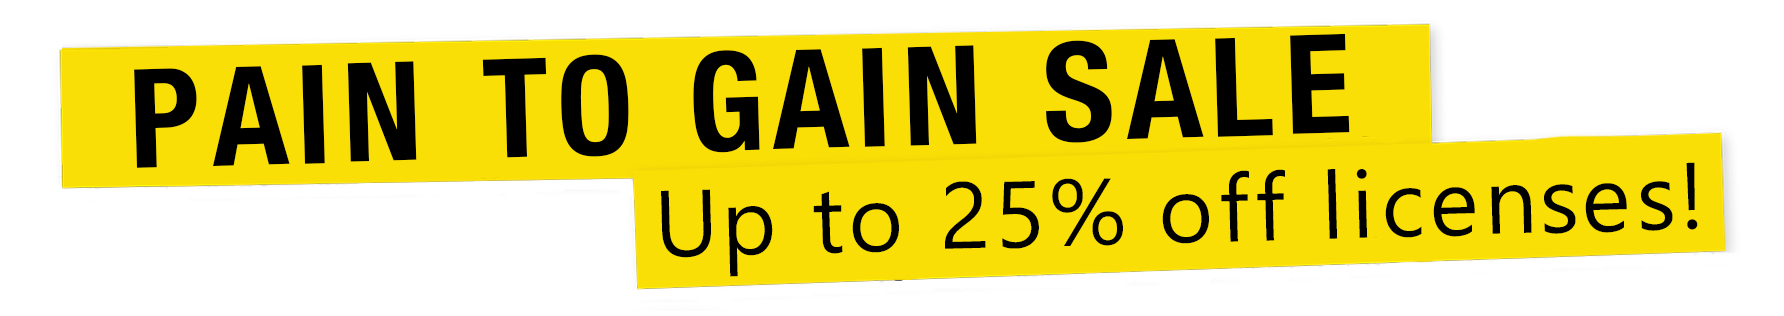 Pain to Gain Sale - Up to 25% off licenses!